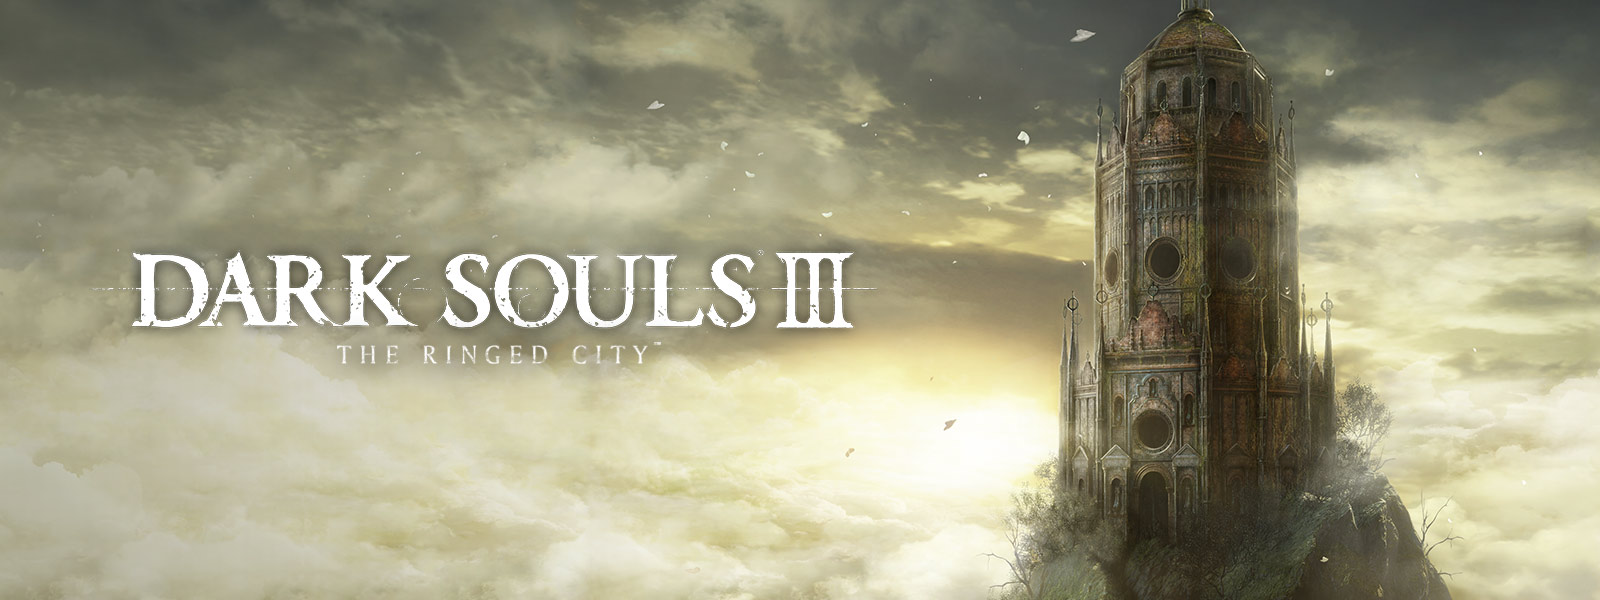 Dark Souls 3 The Ringed City csomag